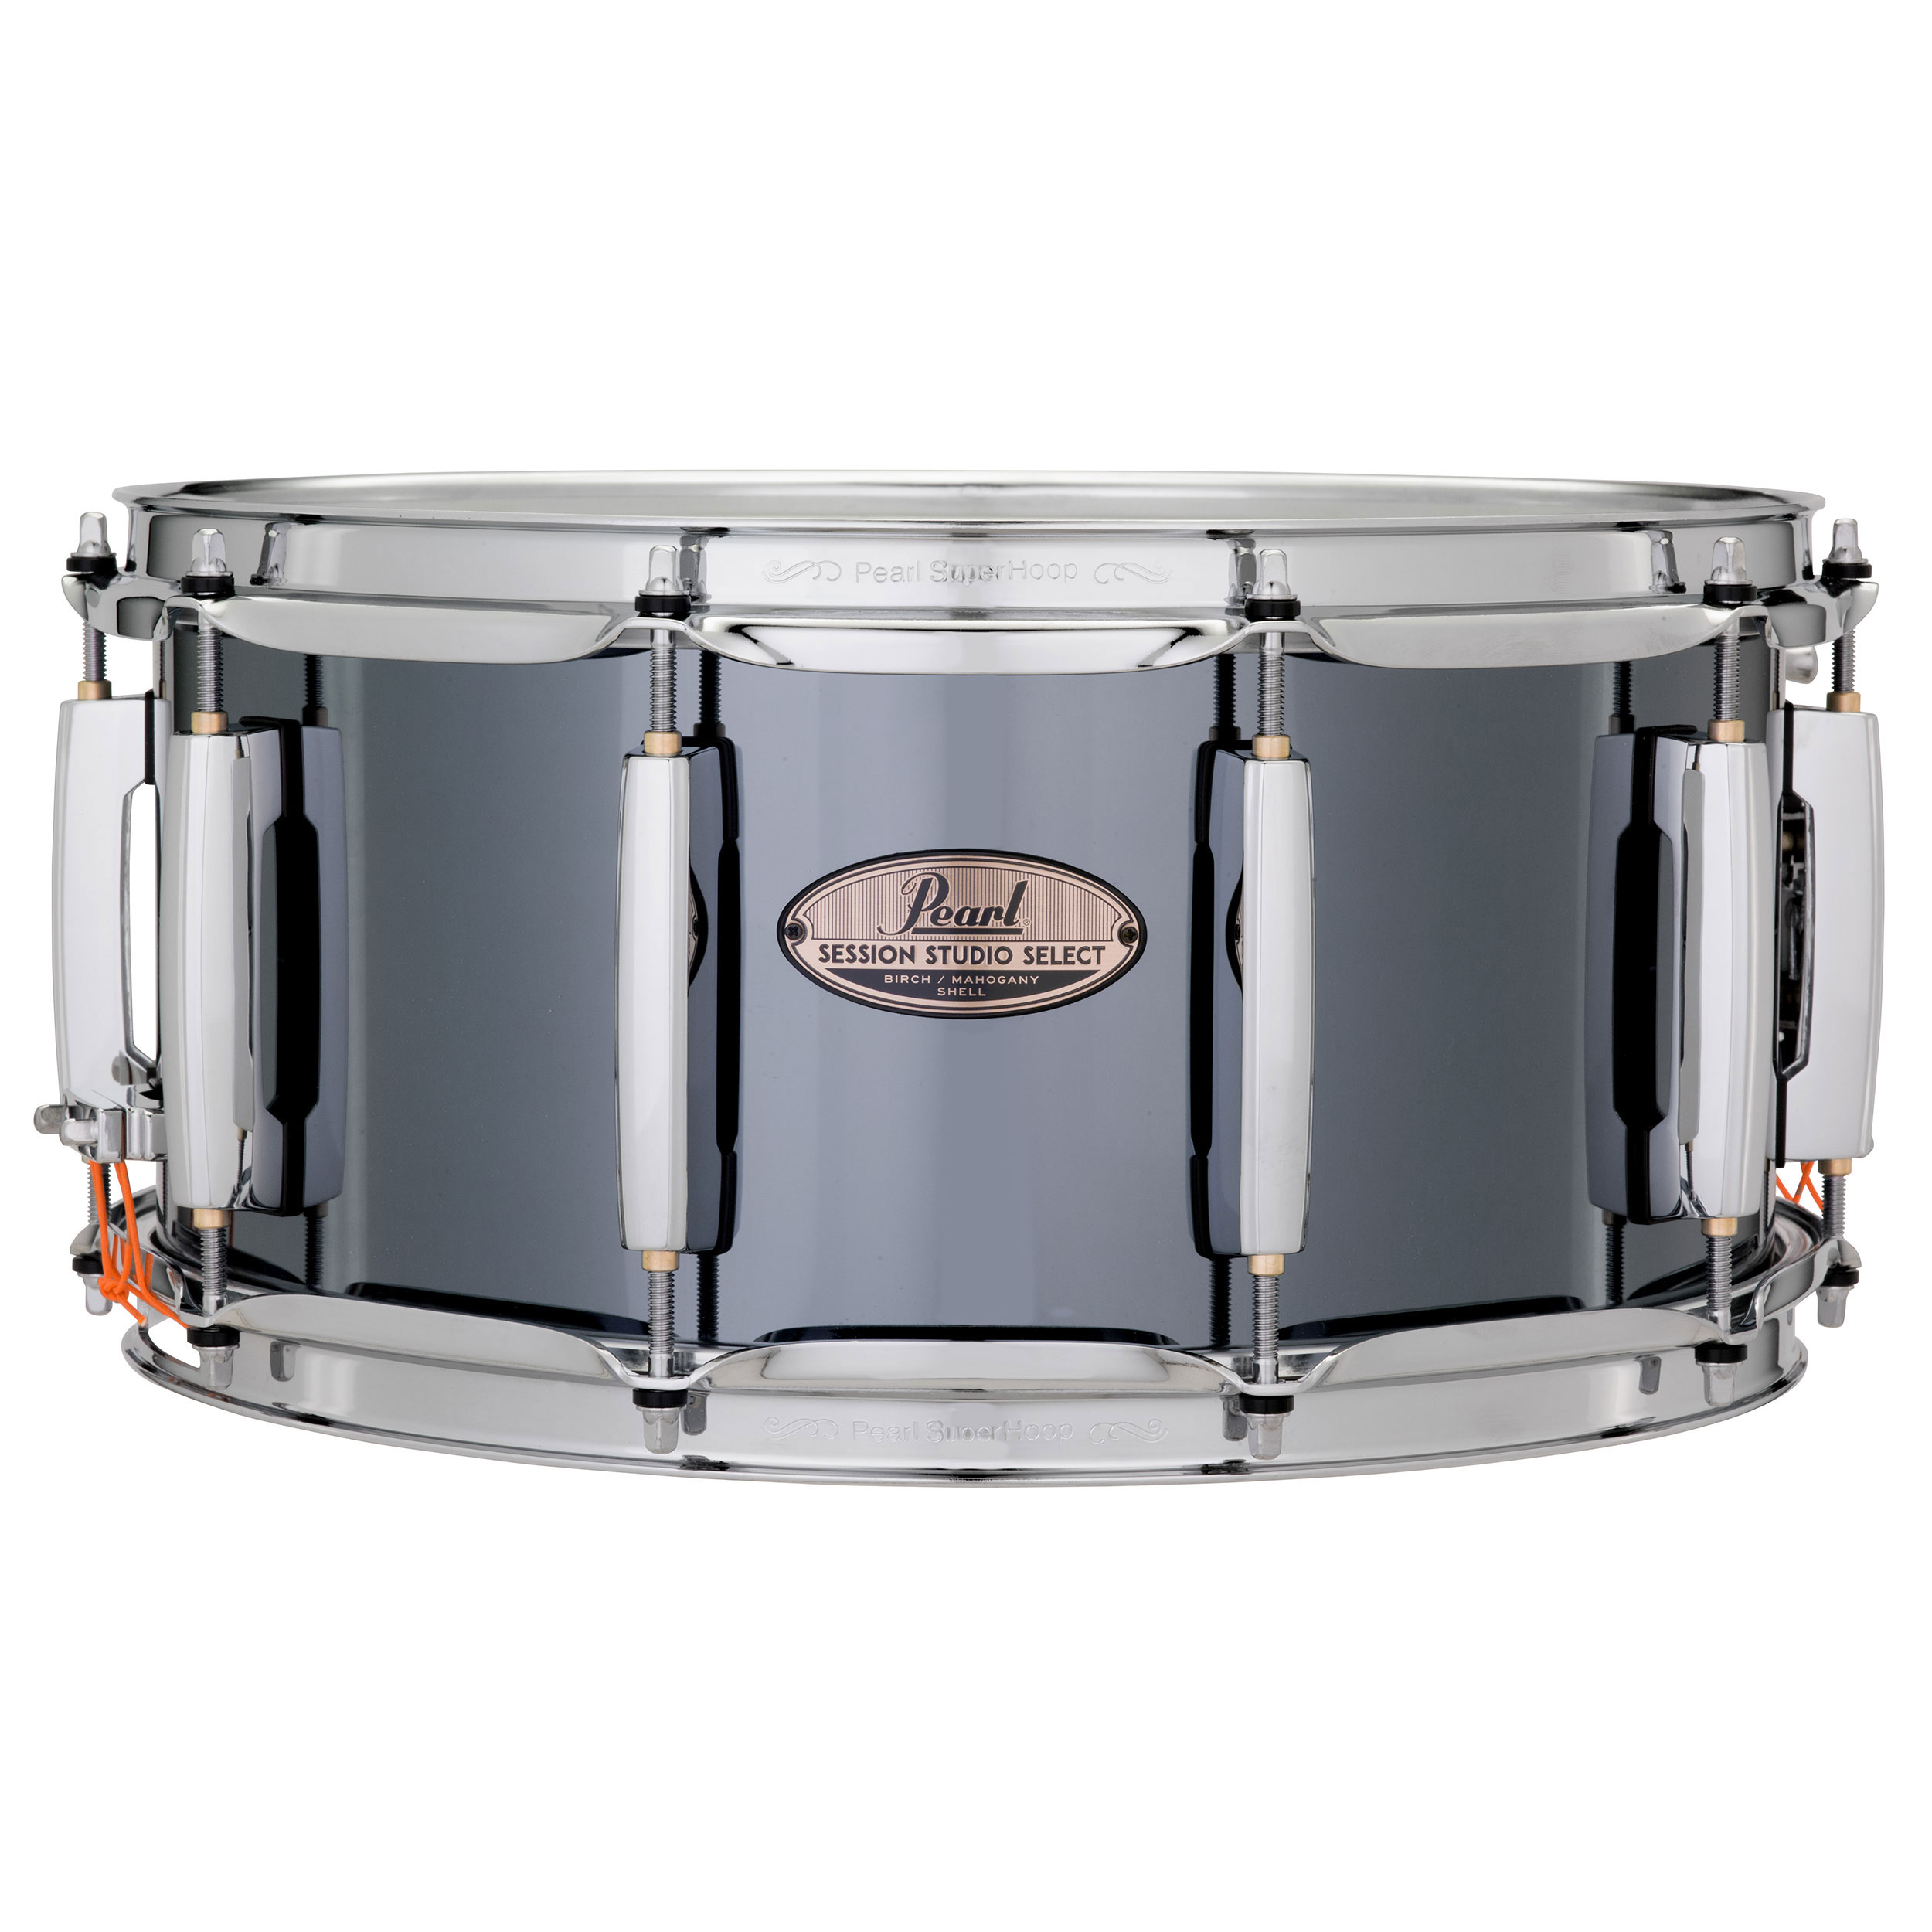 "Pearl 14"" x 6.5"" Session Studio Select Snare Drum"